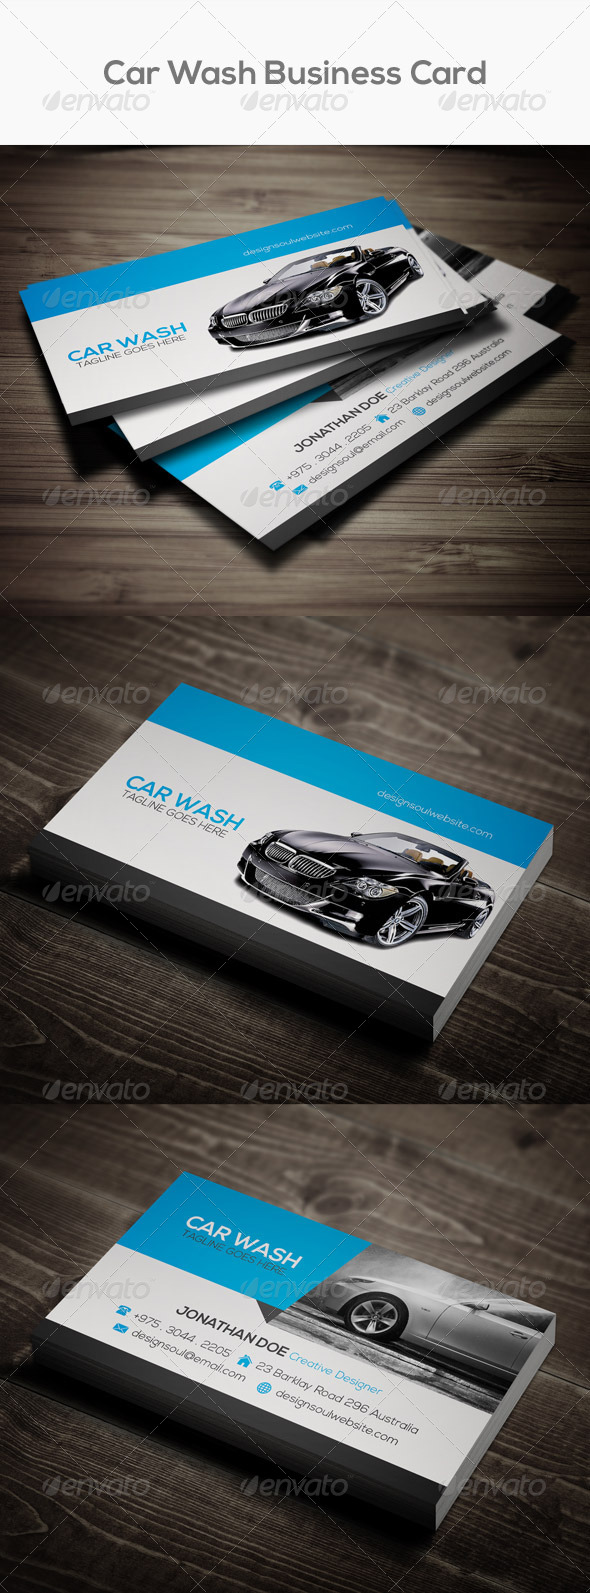 Car wash business card by designsoul14 graphicriver car wash business card colourmoves